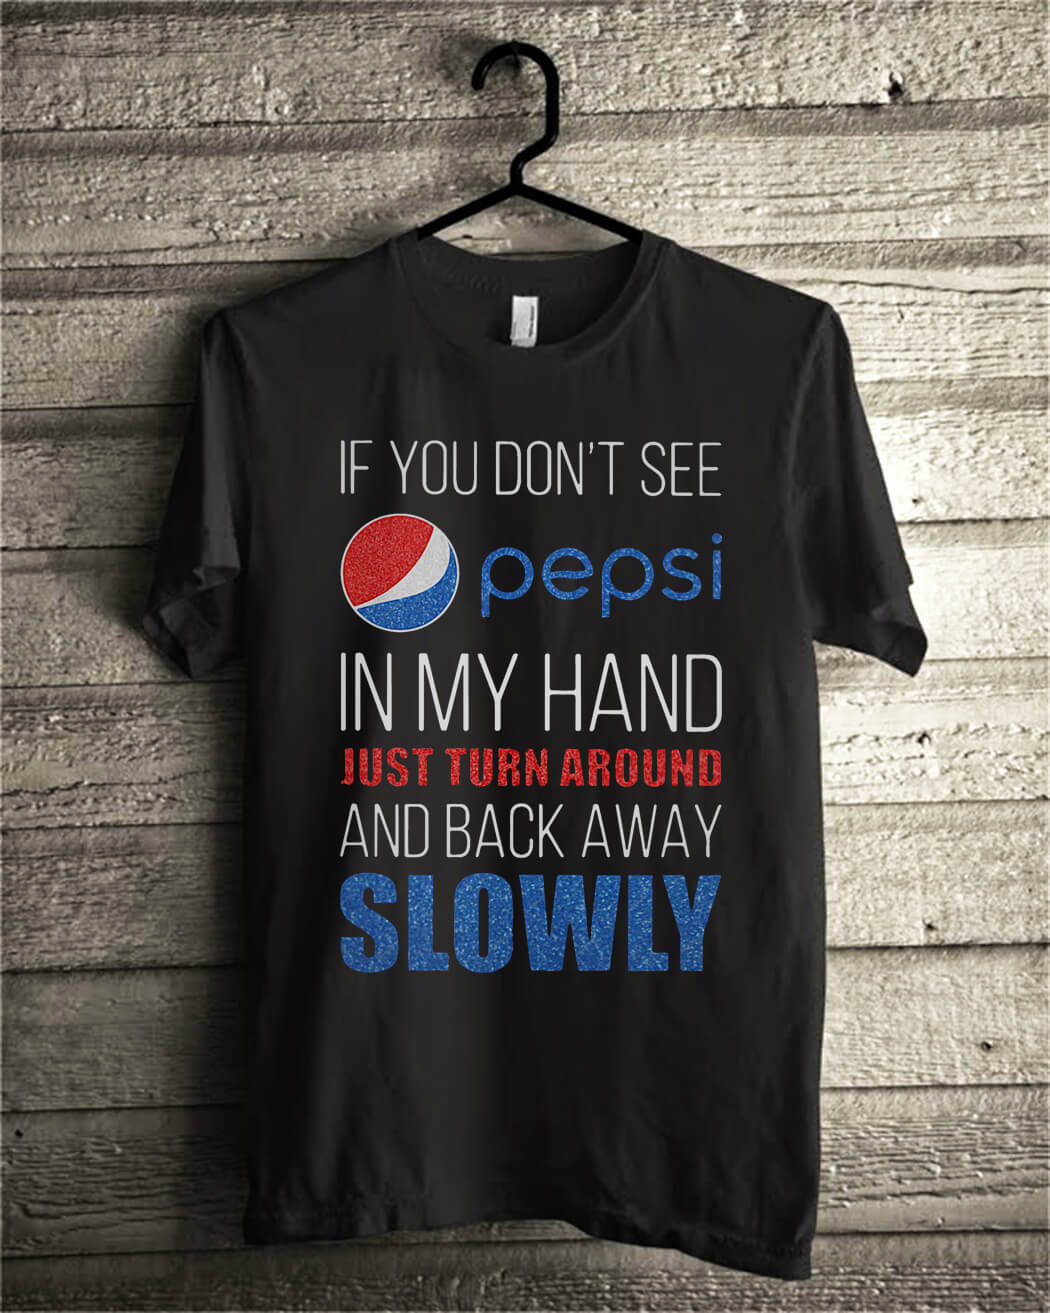 If you don't see pepsi in my hand just turn around and back away slowly shirt